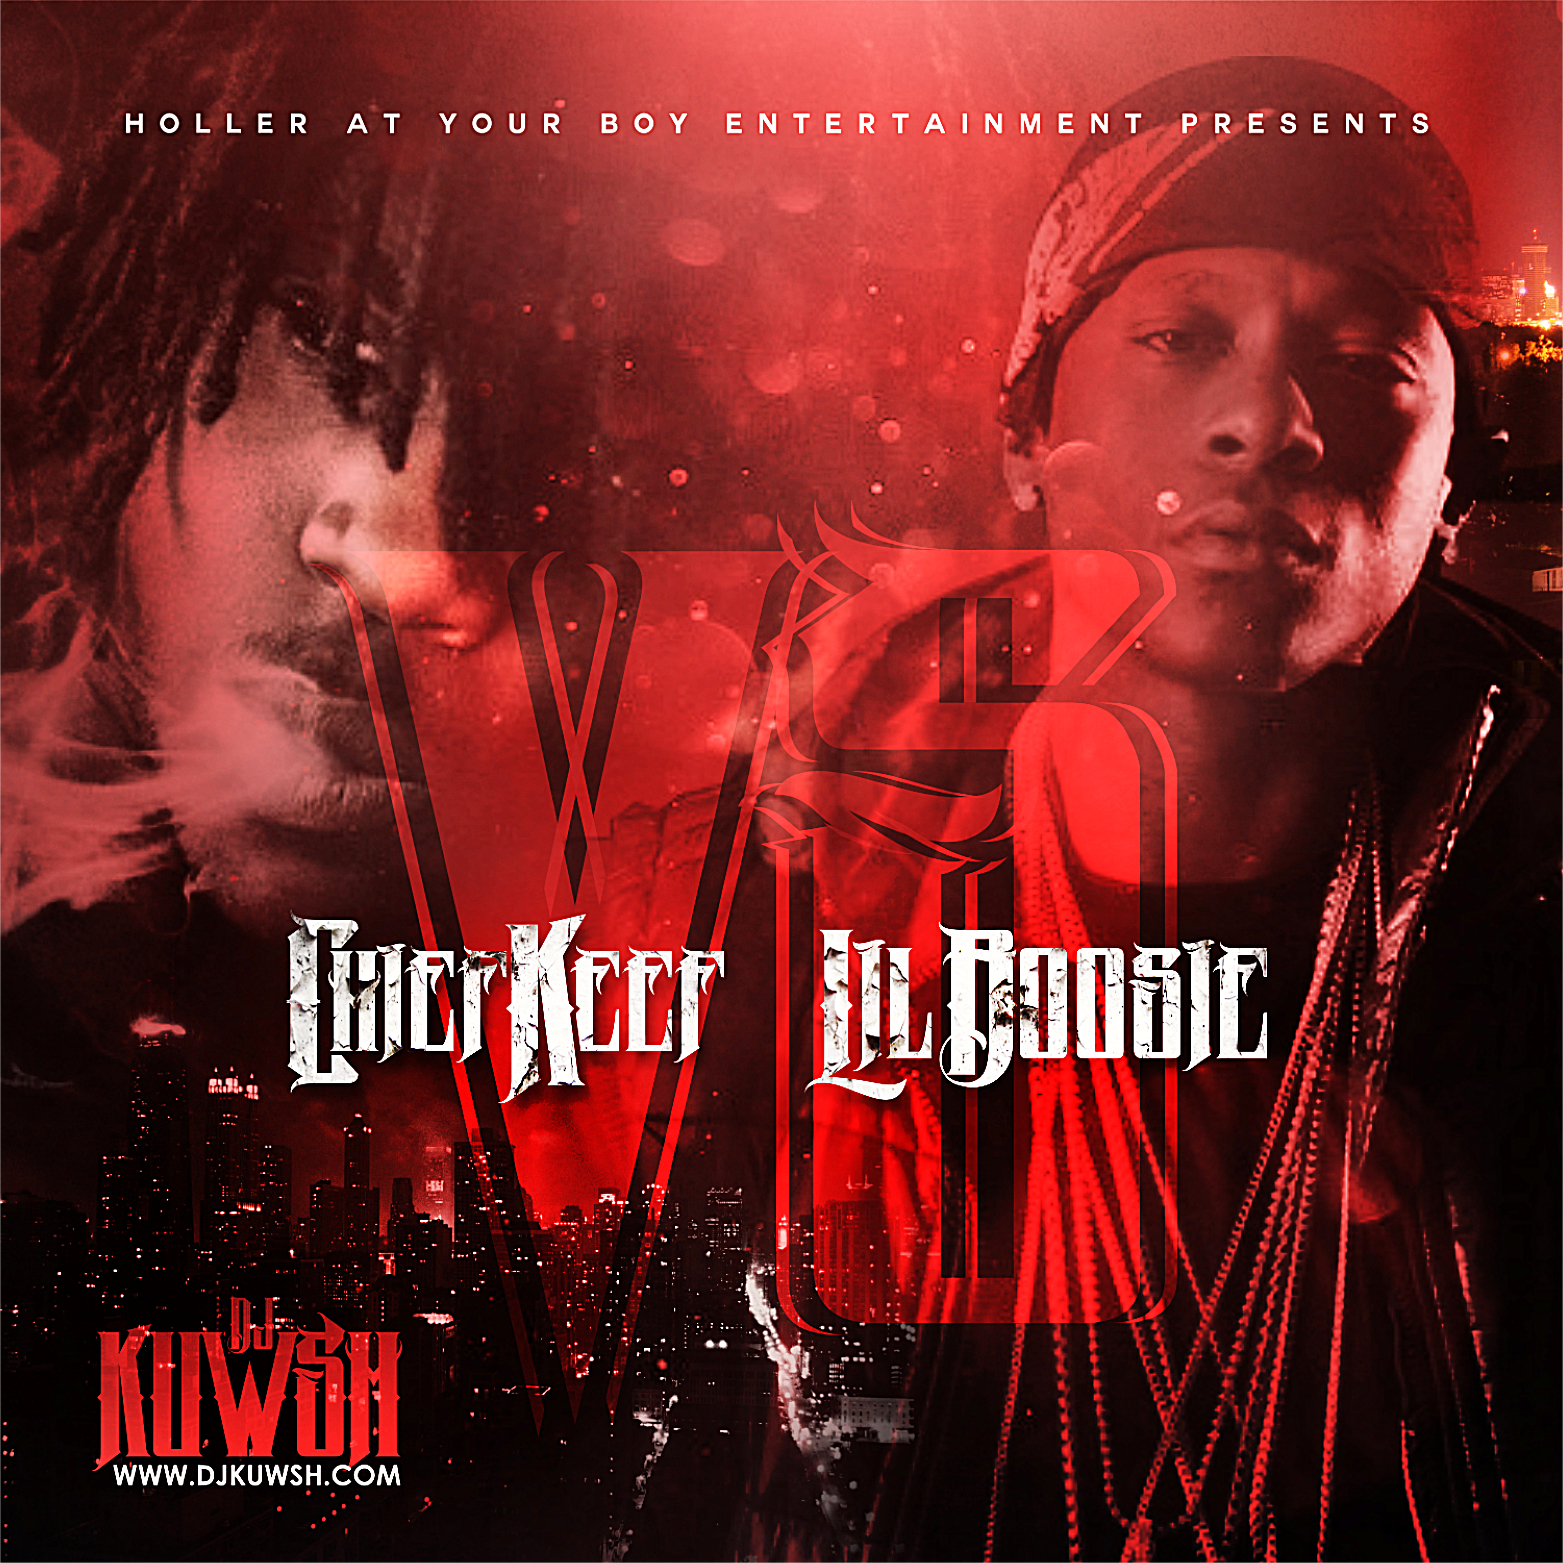 Chief Keef Vs Lil' Boosie (mixtape)